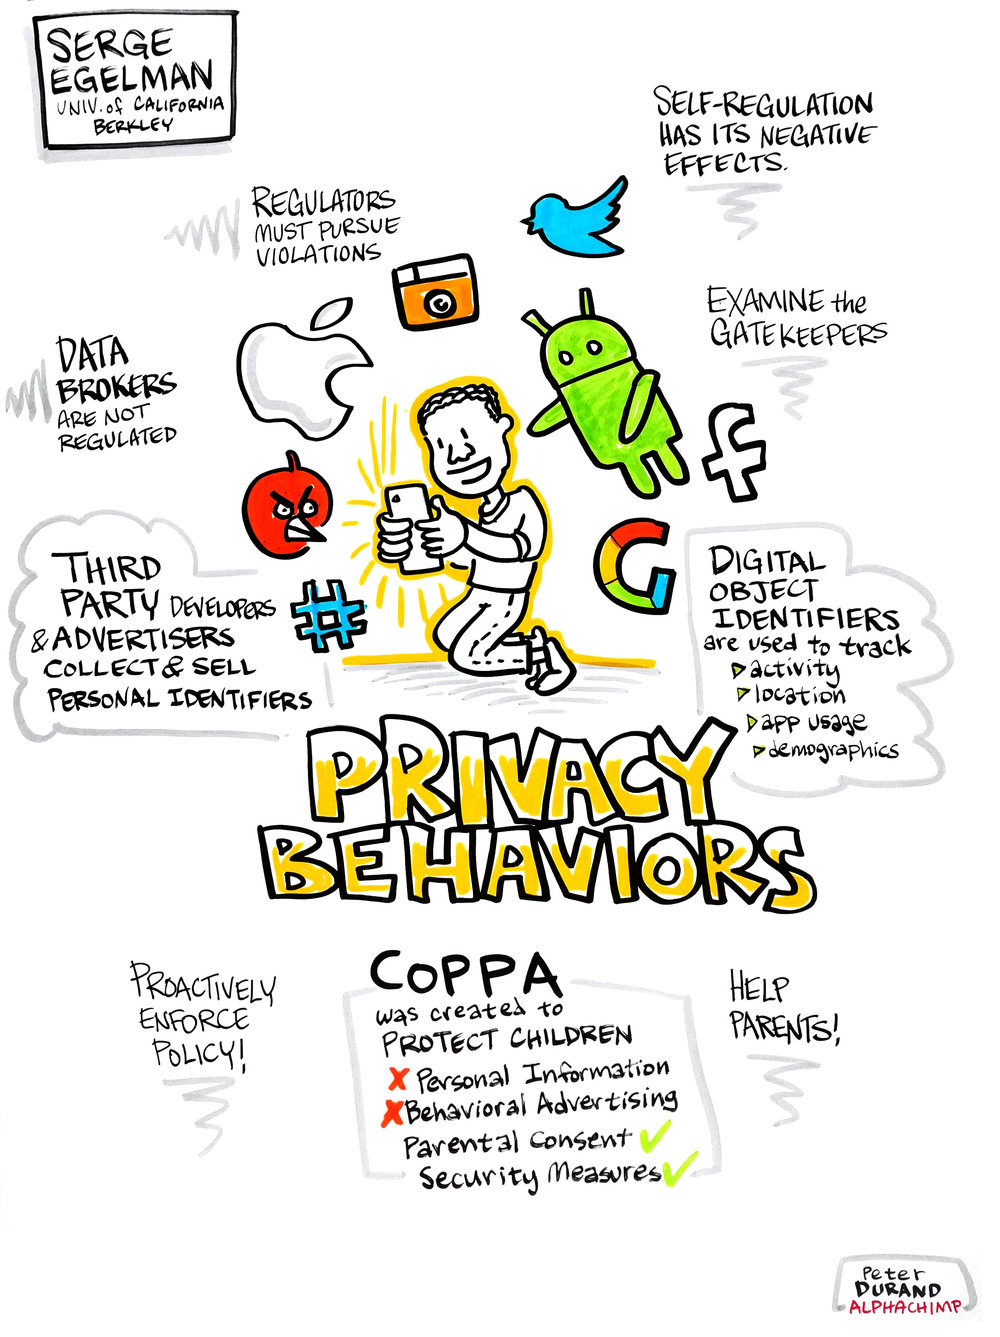 Won't Somebody Think of the Children?! Examining Privacy Behaviors of Mobile Apps at Scale